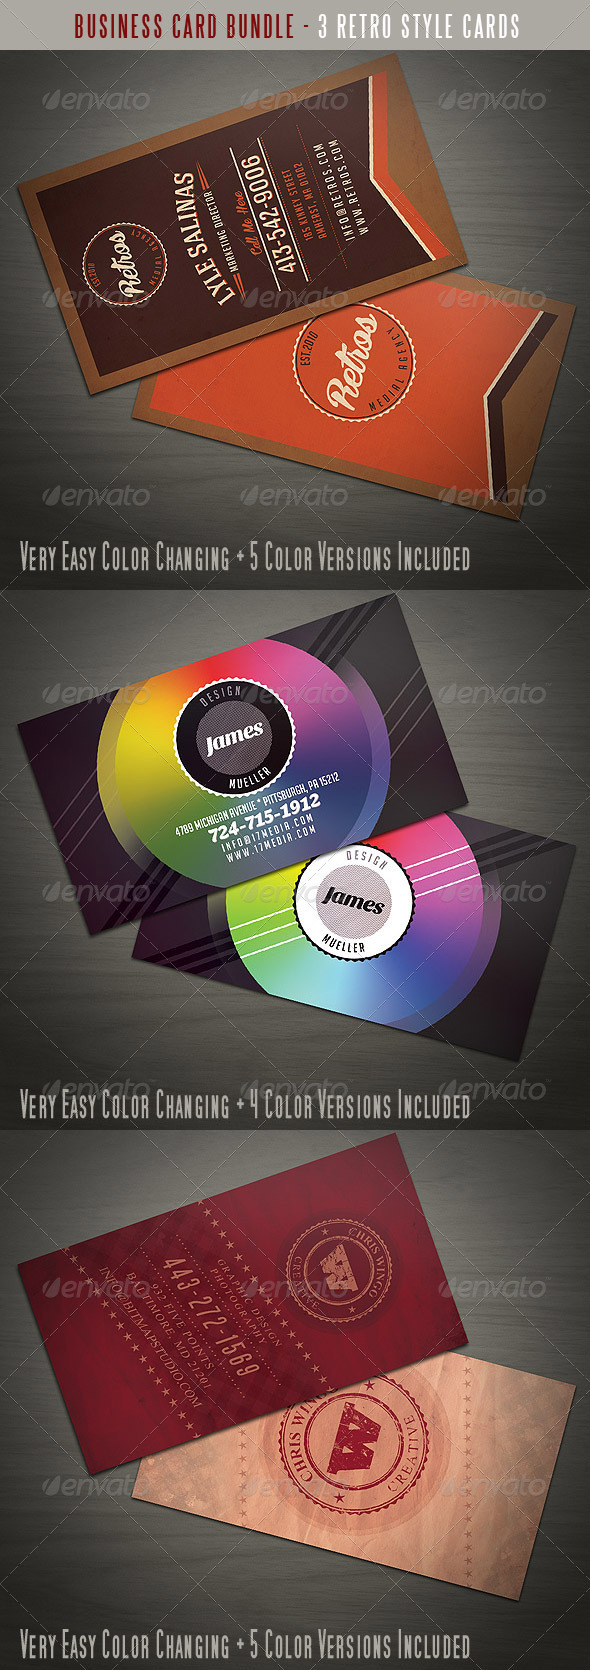 Retro or Vintage Business Card Bundle - Retro/Vintage Business Cards